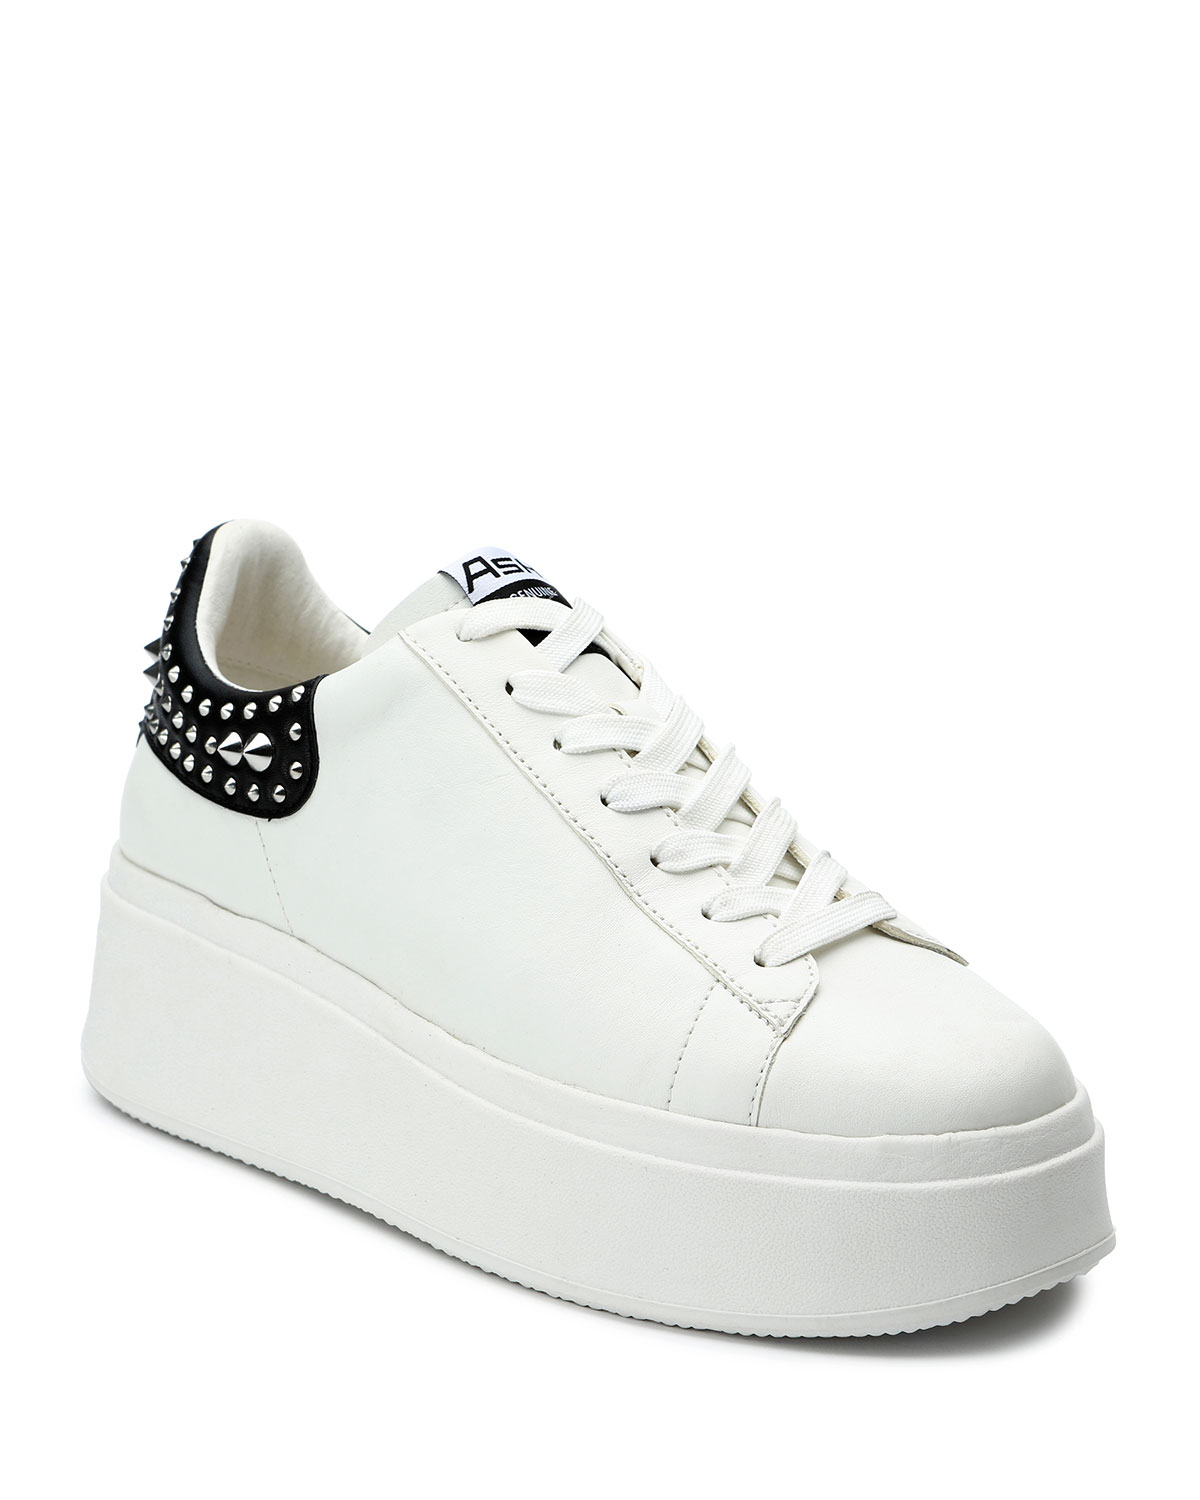 Ash Moby Studded Platform Sneakers